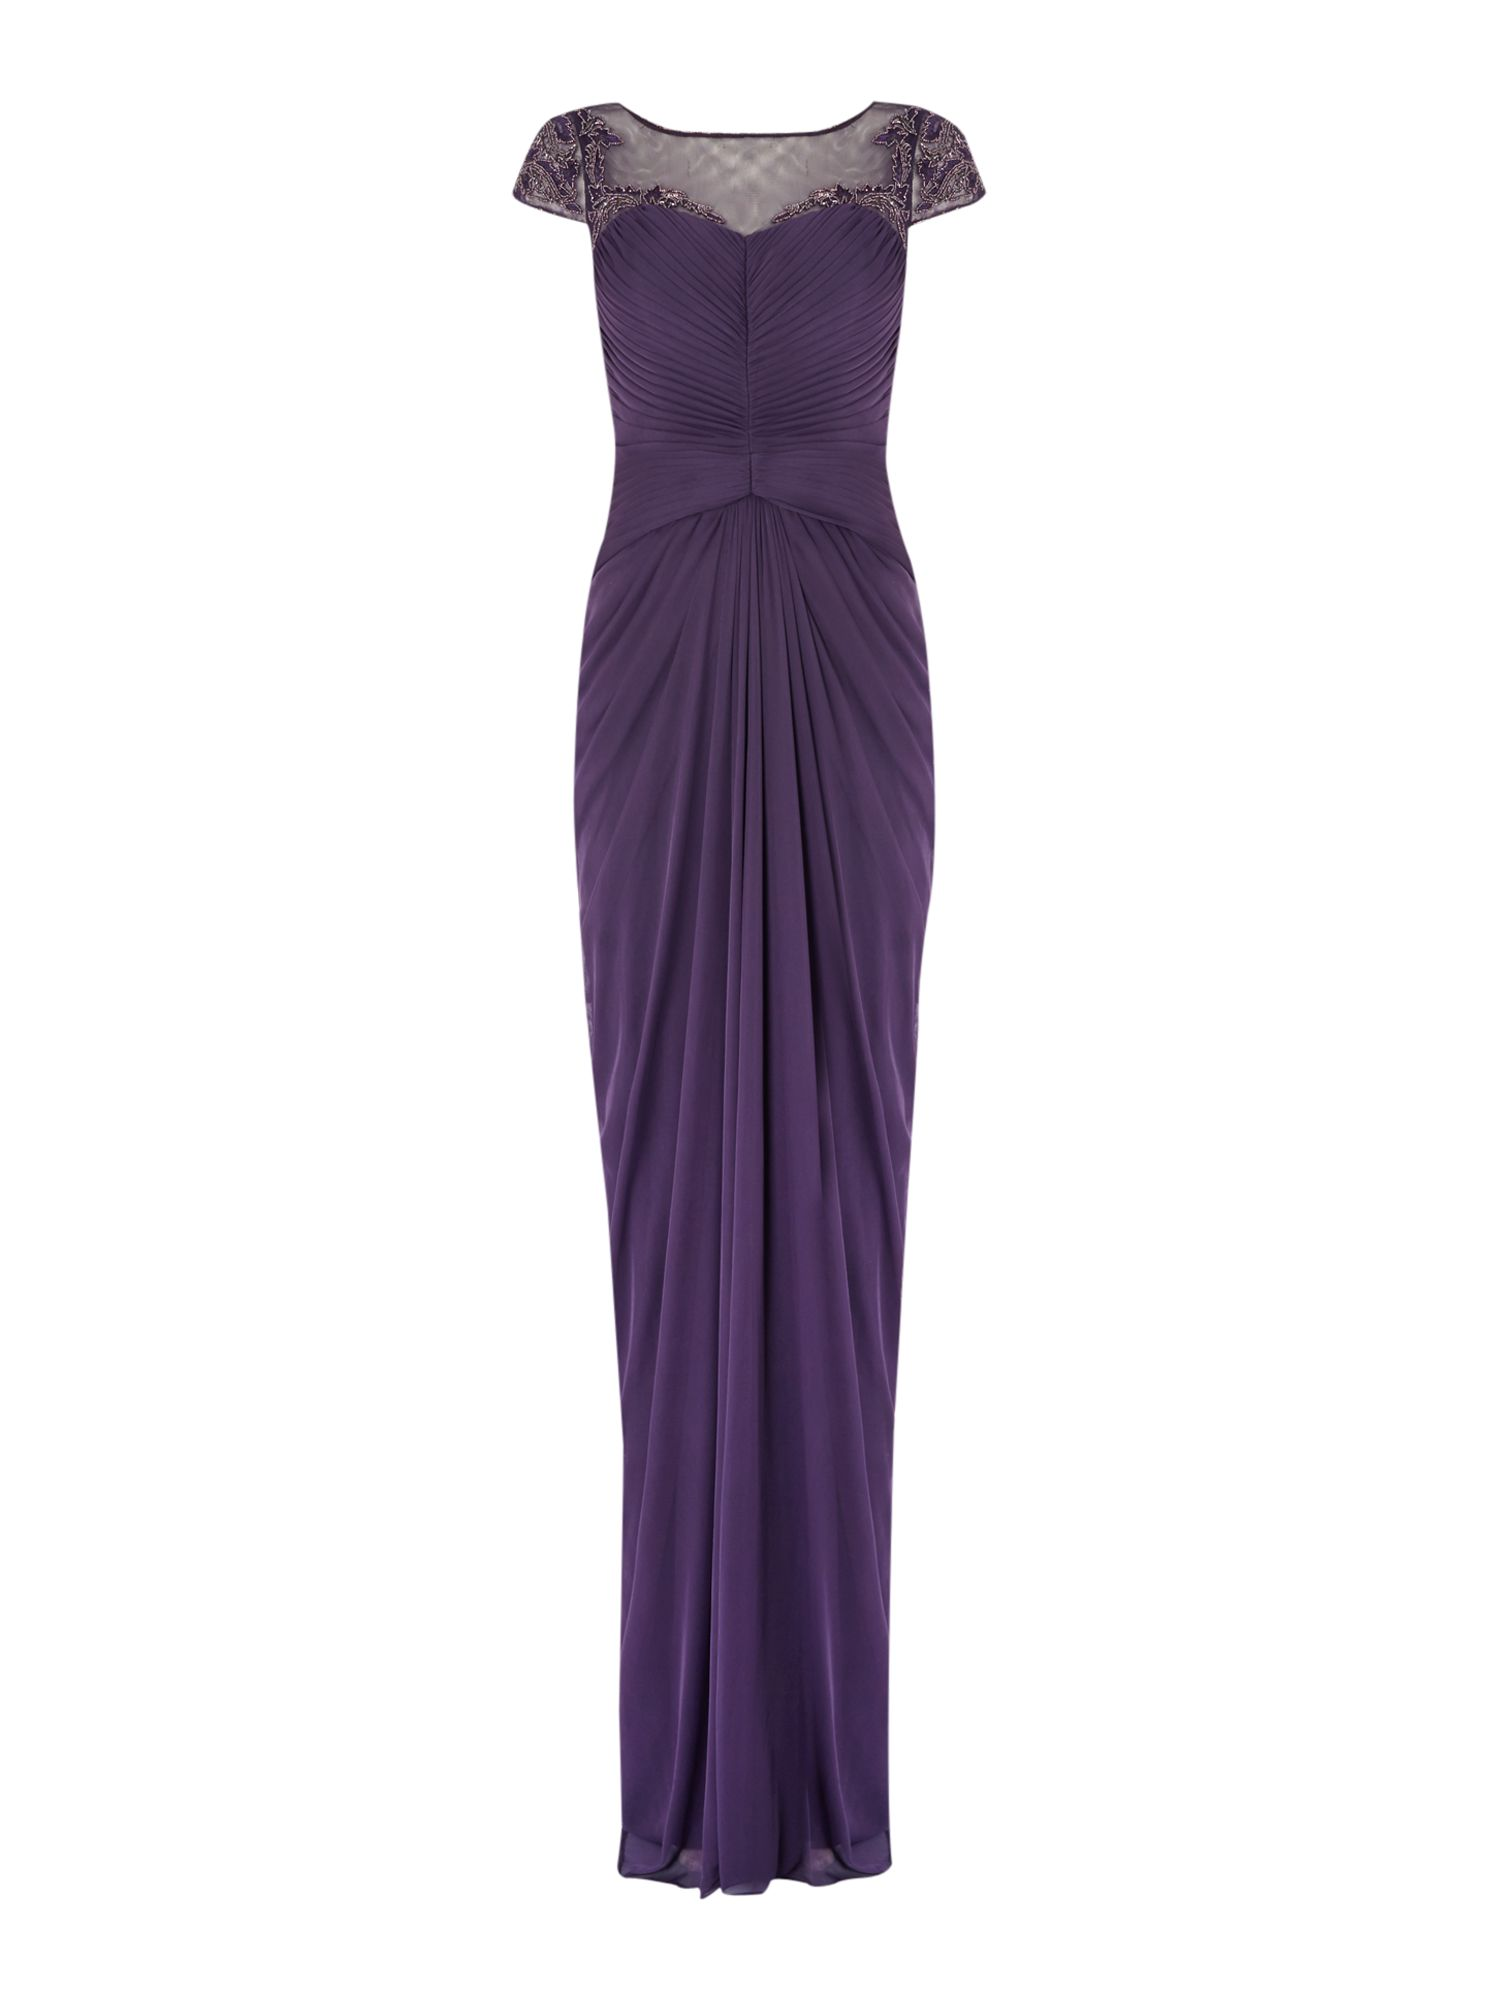 Adrianna Papell Drape front gown with sequin detailing $175.00 AT vintagedancer.com